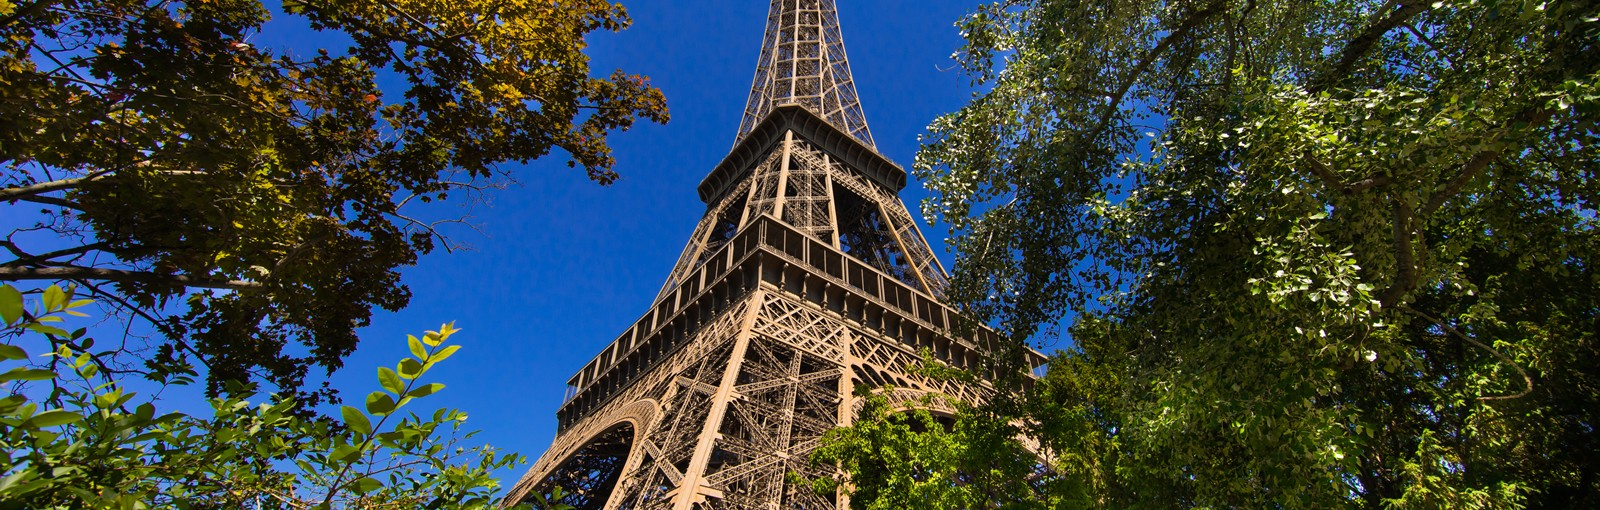 Tours Paris package with 4 hotel nights - Paris Packages - Paris Tours